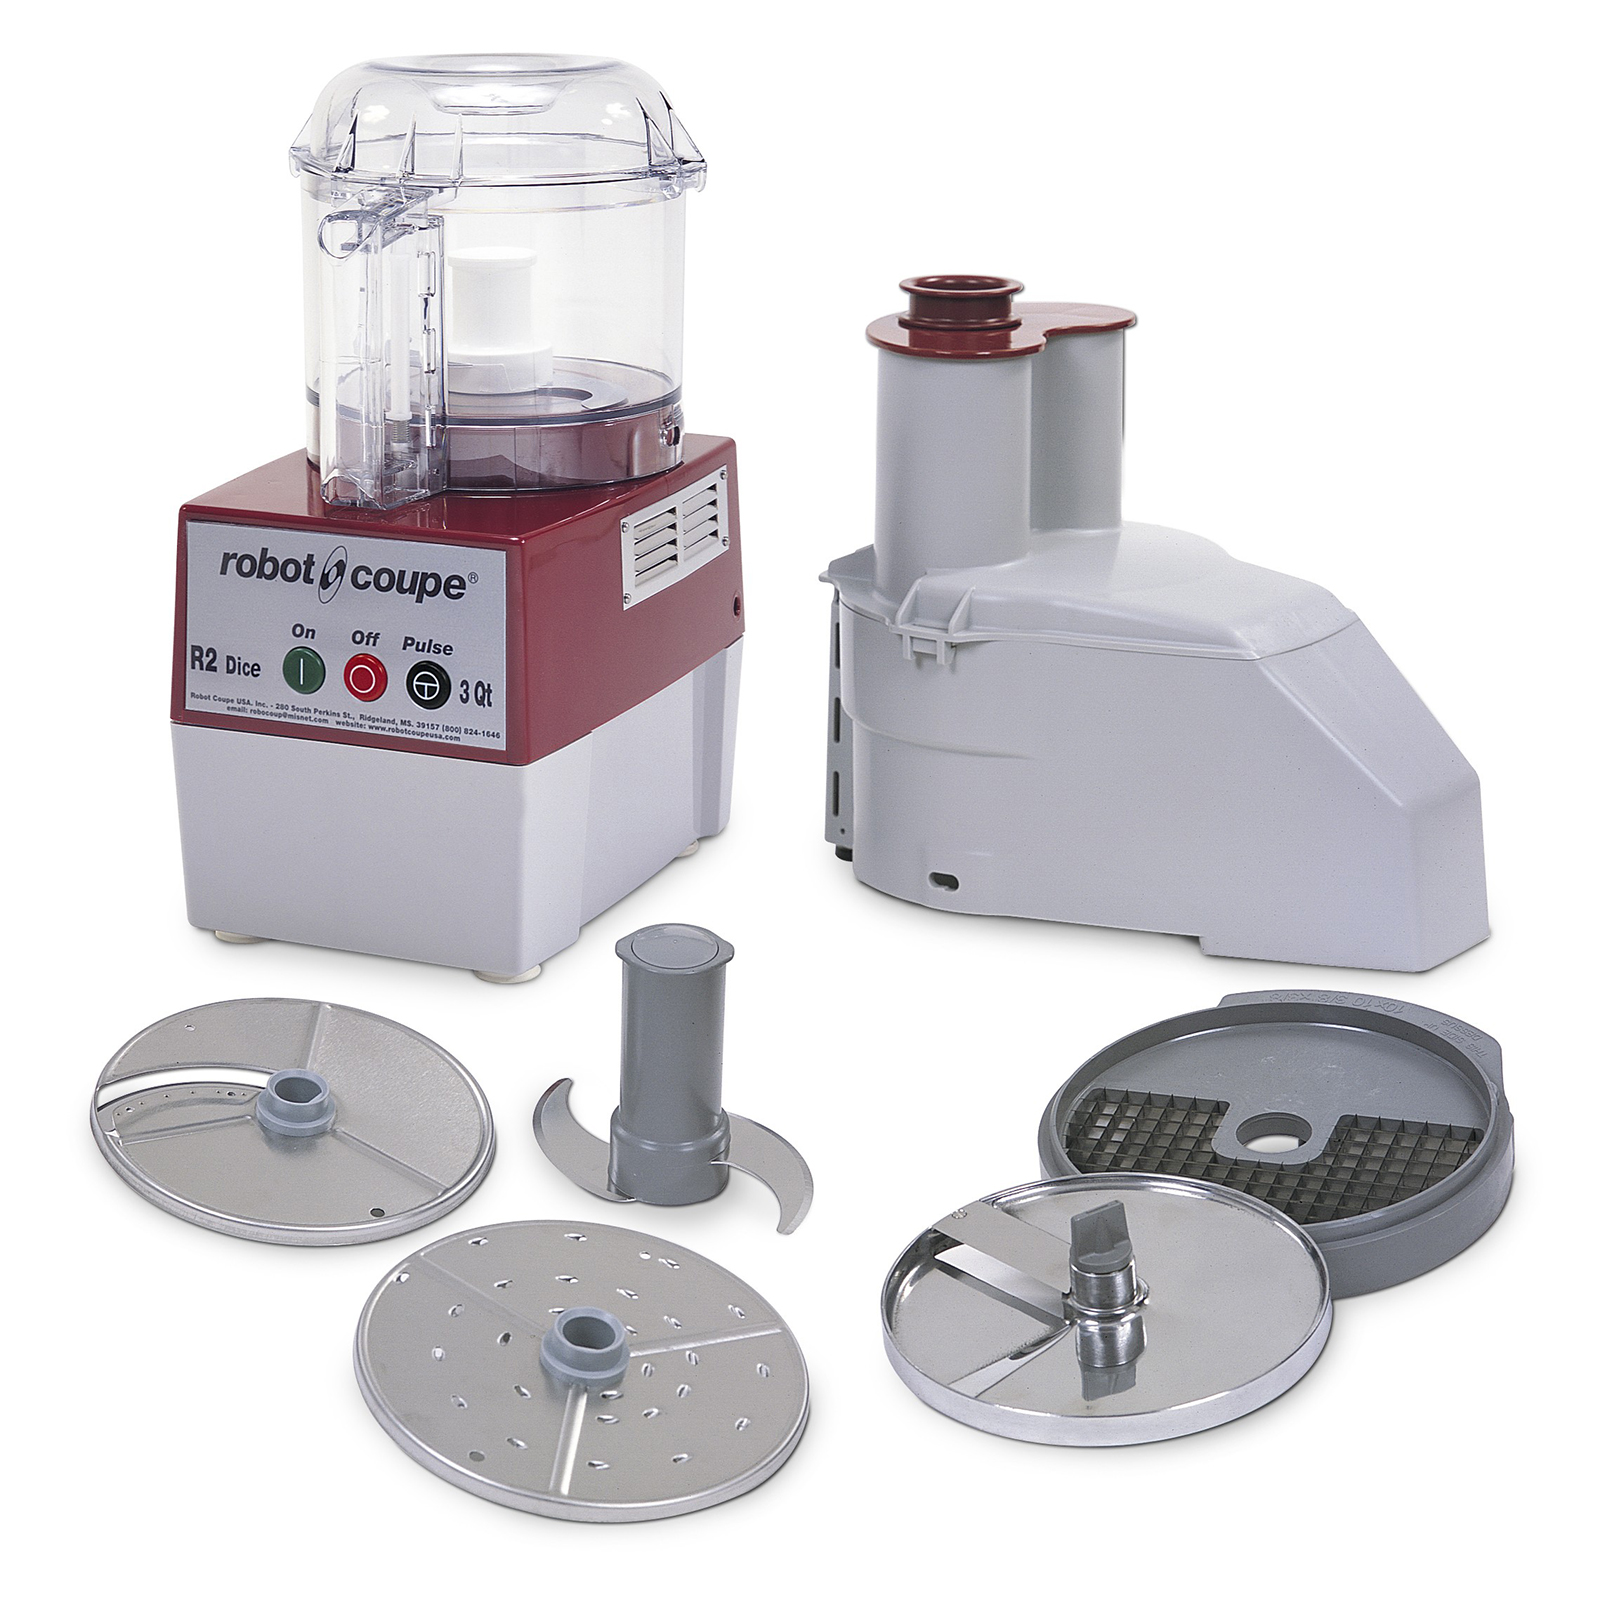 Robot Coupe R2 DICE CLR food processor, benchtop / countertop